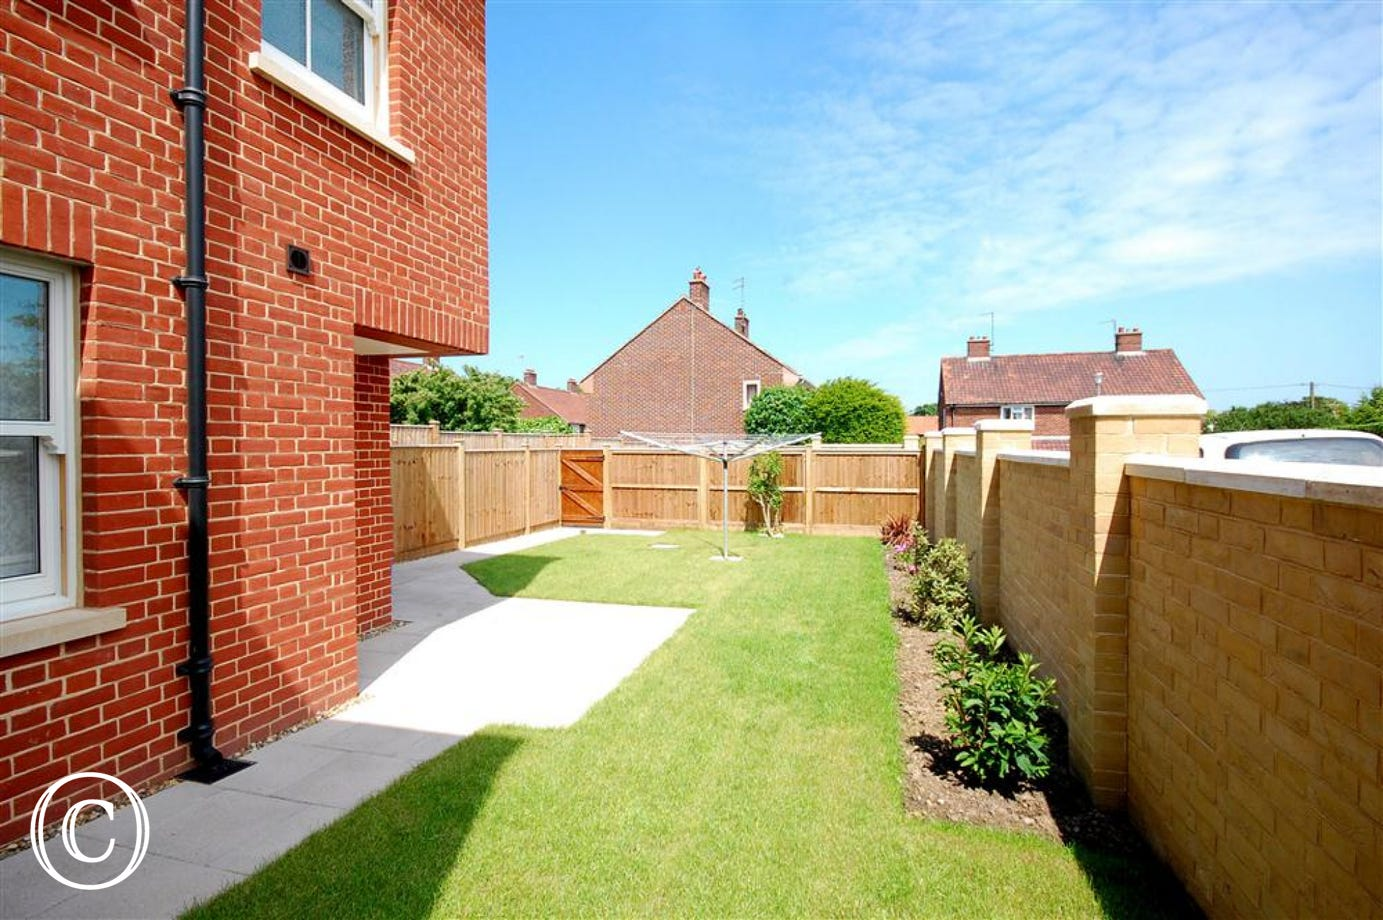 Enjoy this rear courtyard garden with lawn and outside seating.